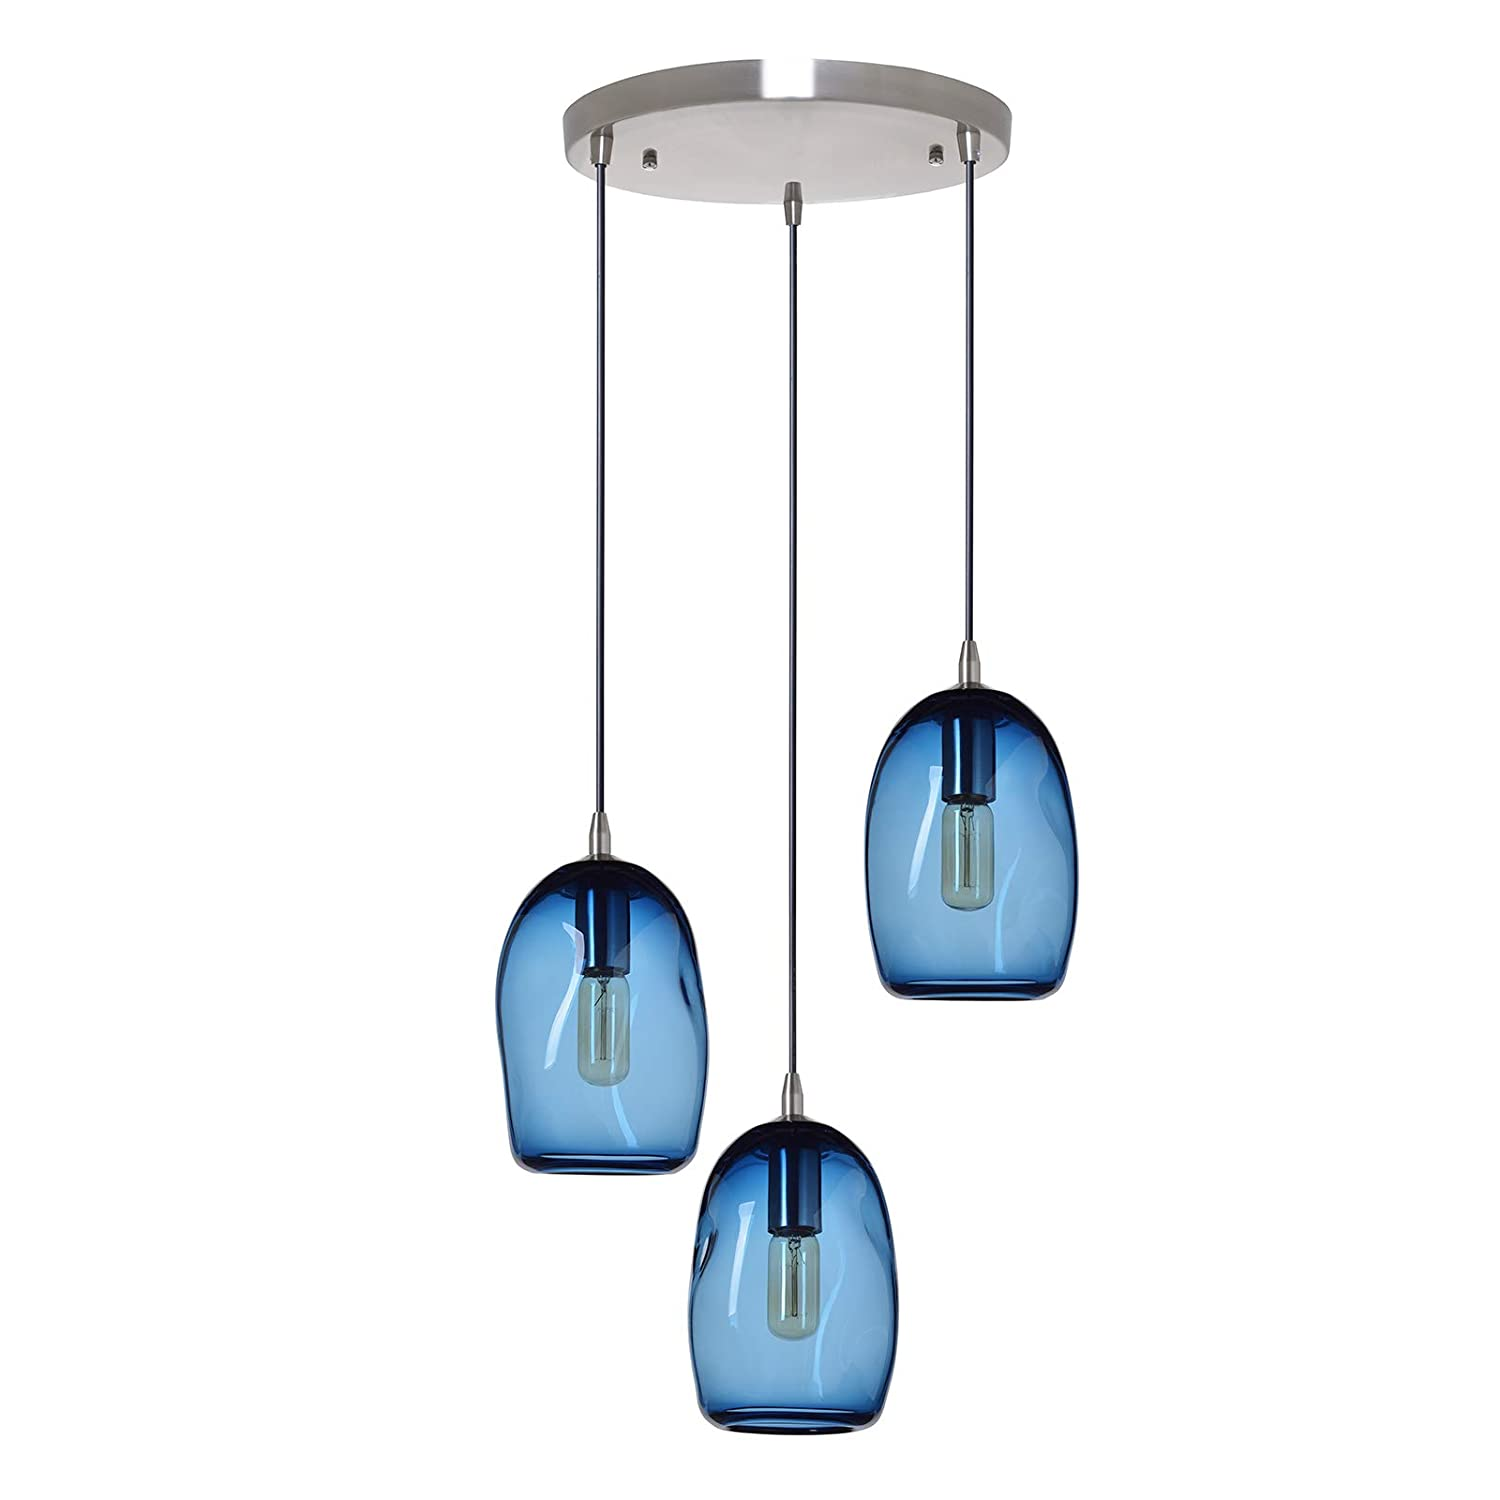 Casamotion Chandelier Pendant Lighting Handblown Glass Drop Ceiling Lights, Organic Contemporary Style Hanging Light, Grey Blue Glass Shade, Brushed Nickel Finish, 3 Lights Chandelier